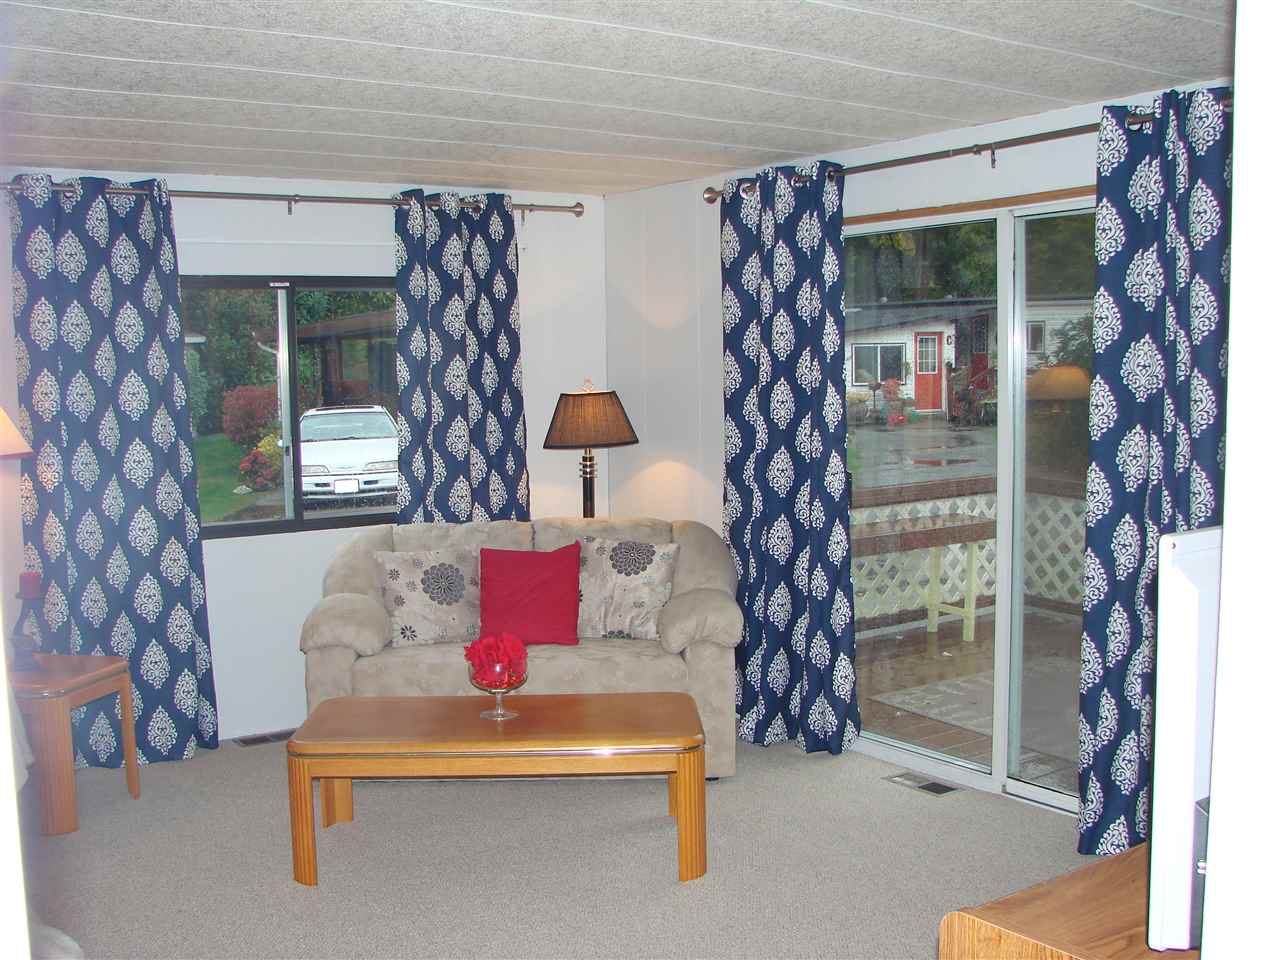 Photo 17: Photos: 25 4496 SUNSHINE COAST Highway in Sechelt: Sechelt District Manufactured Home for sale (Sunshine Coast)  : MLS® # R2217808